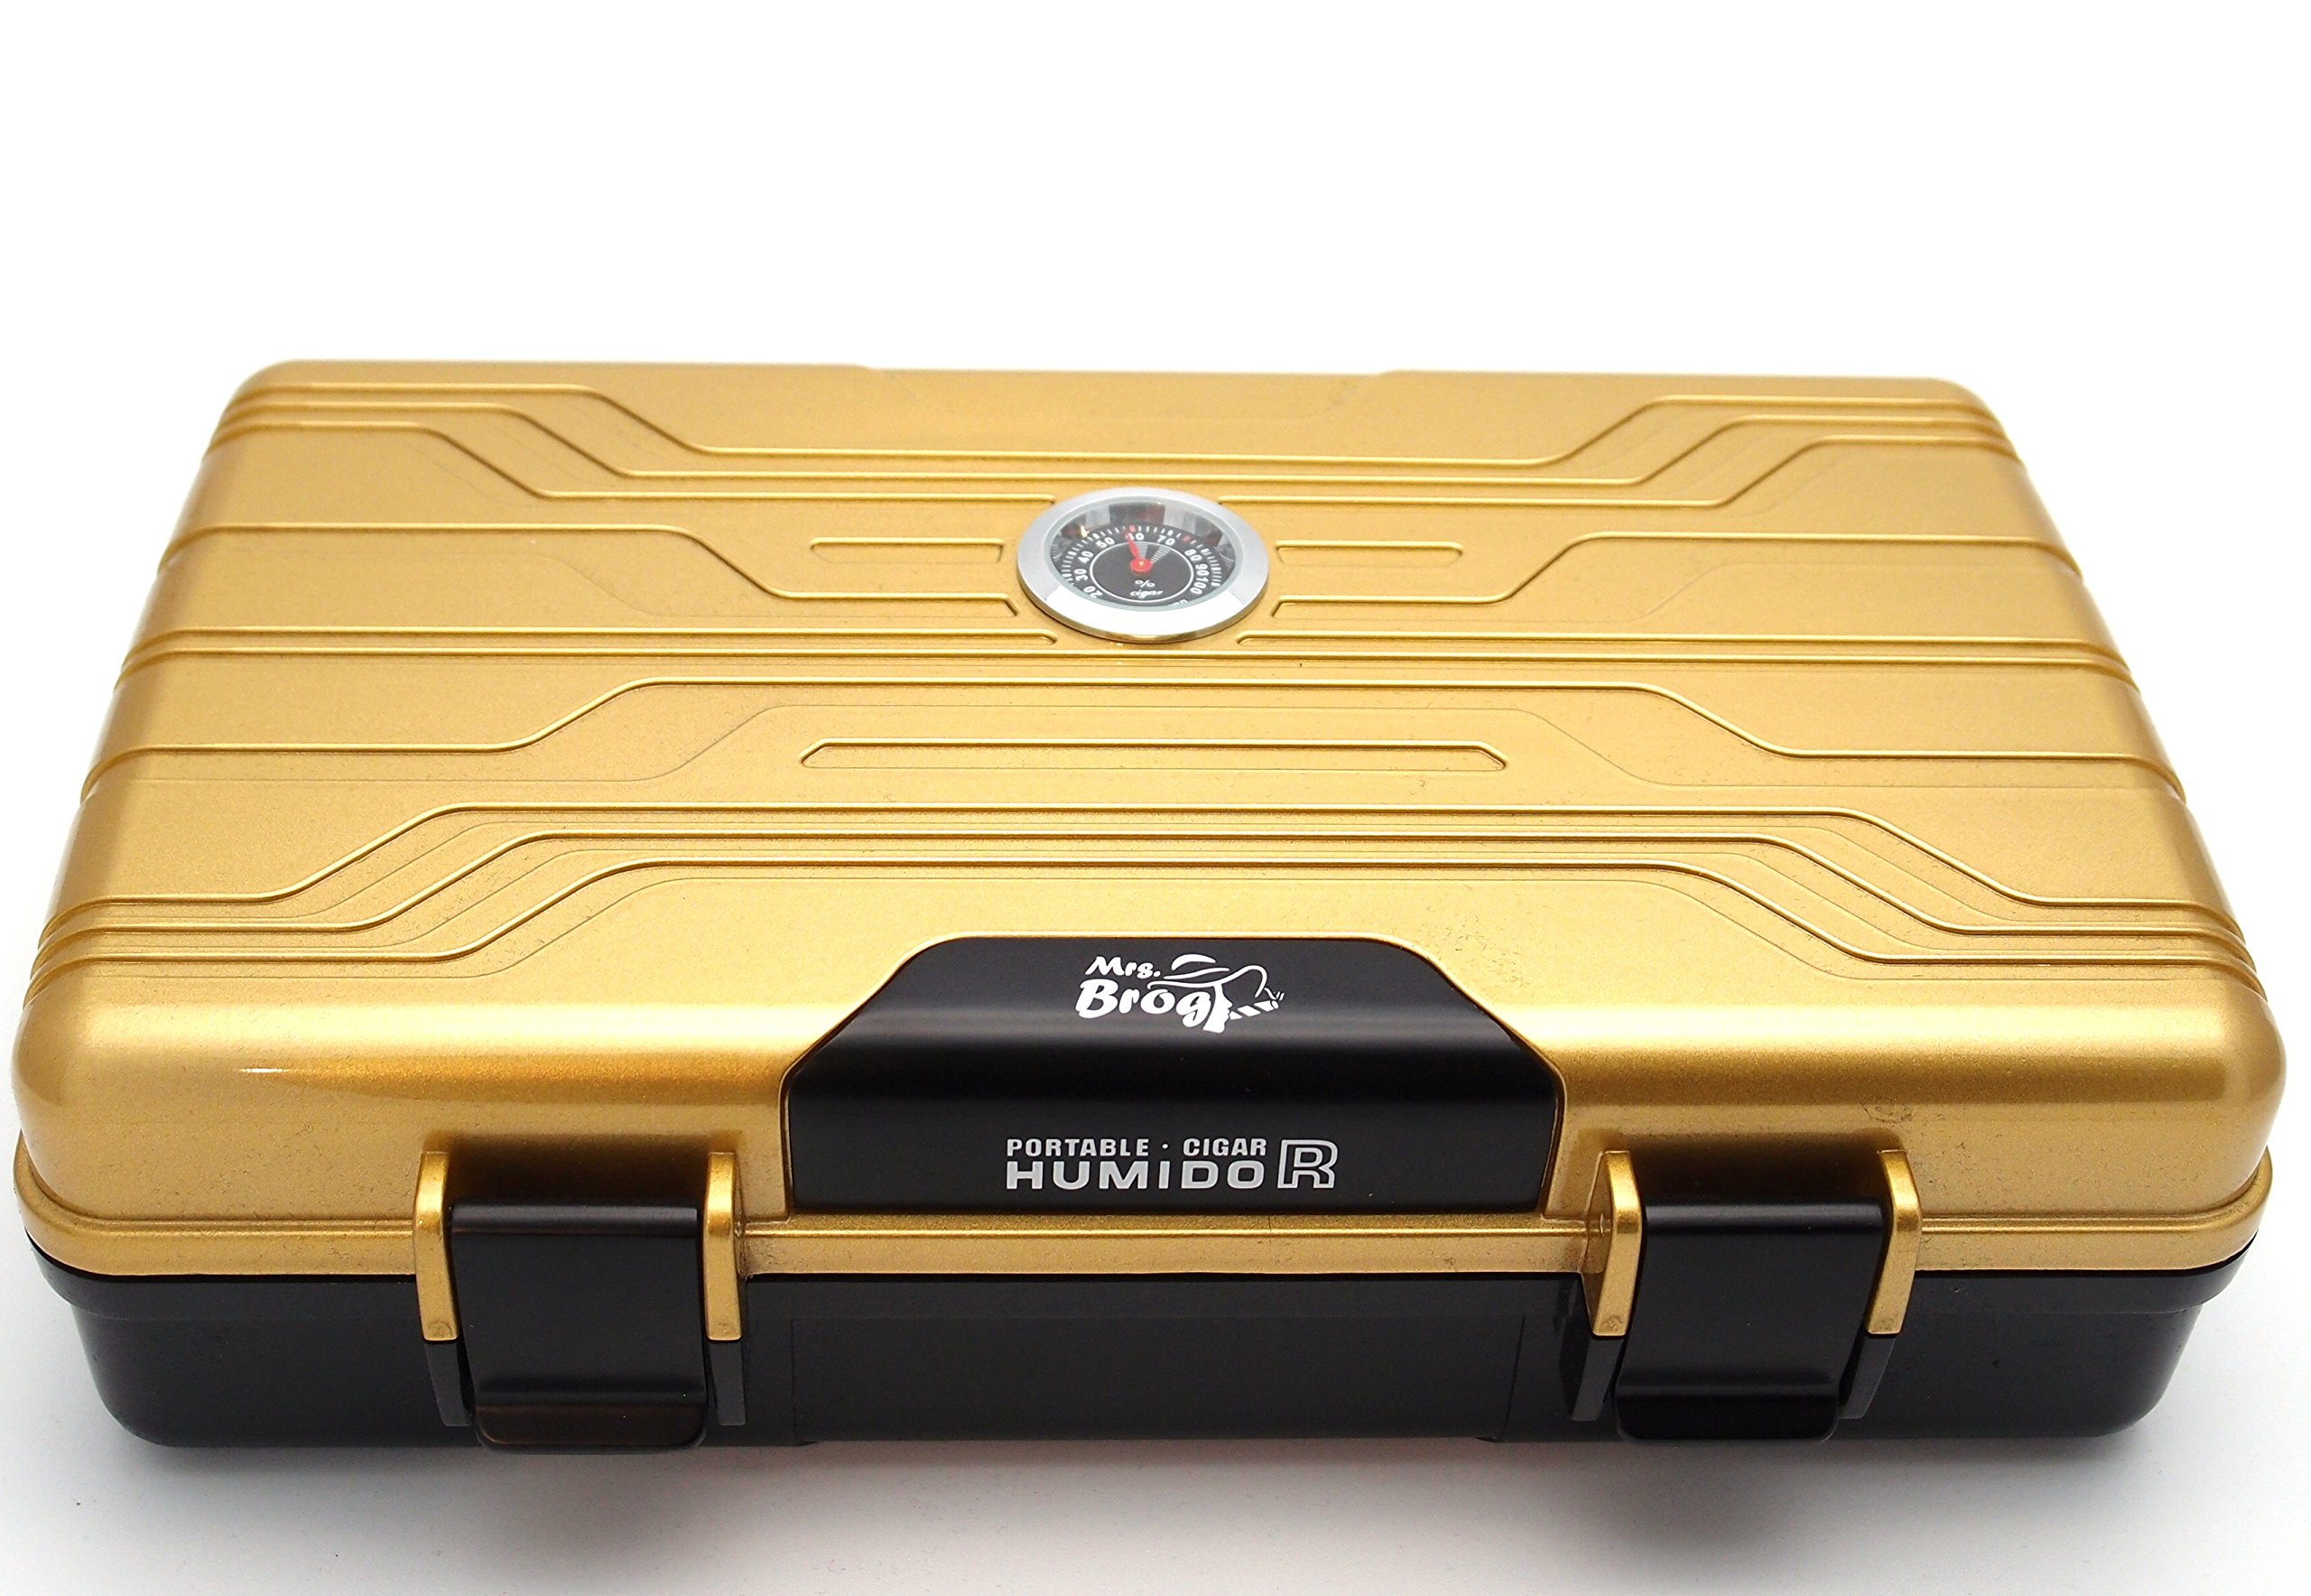 Waterproof Cigar Travel Humidor for 10 Cigars - Integrated Hygrometer and Humidifier Included - 2 Trays